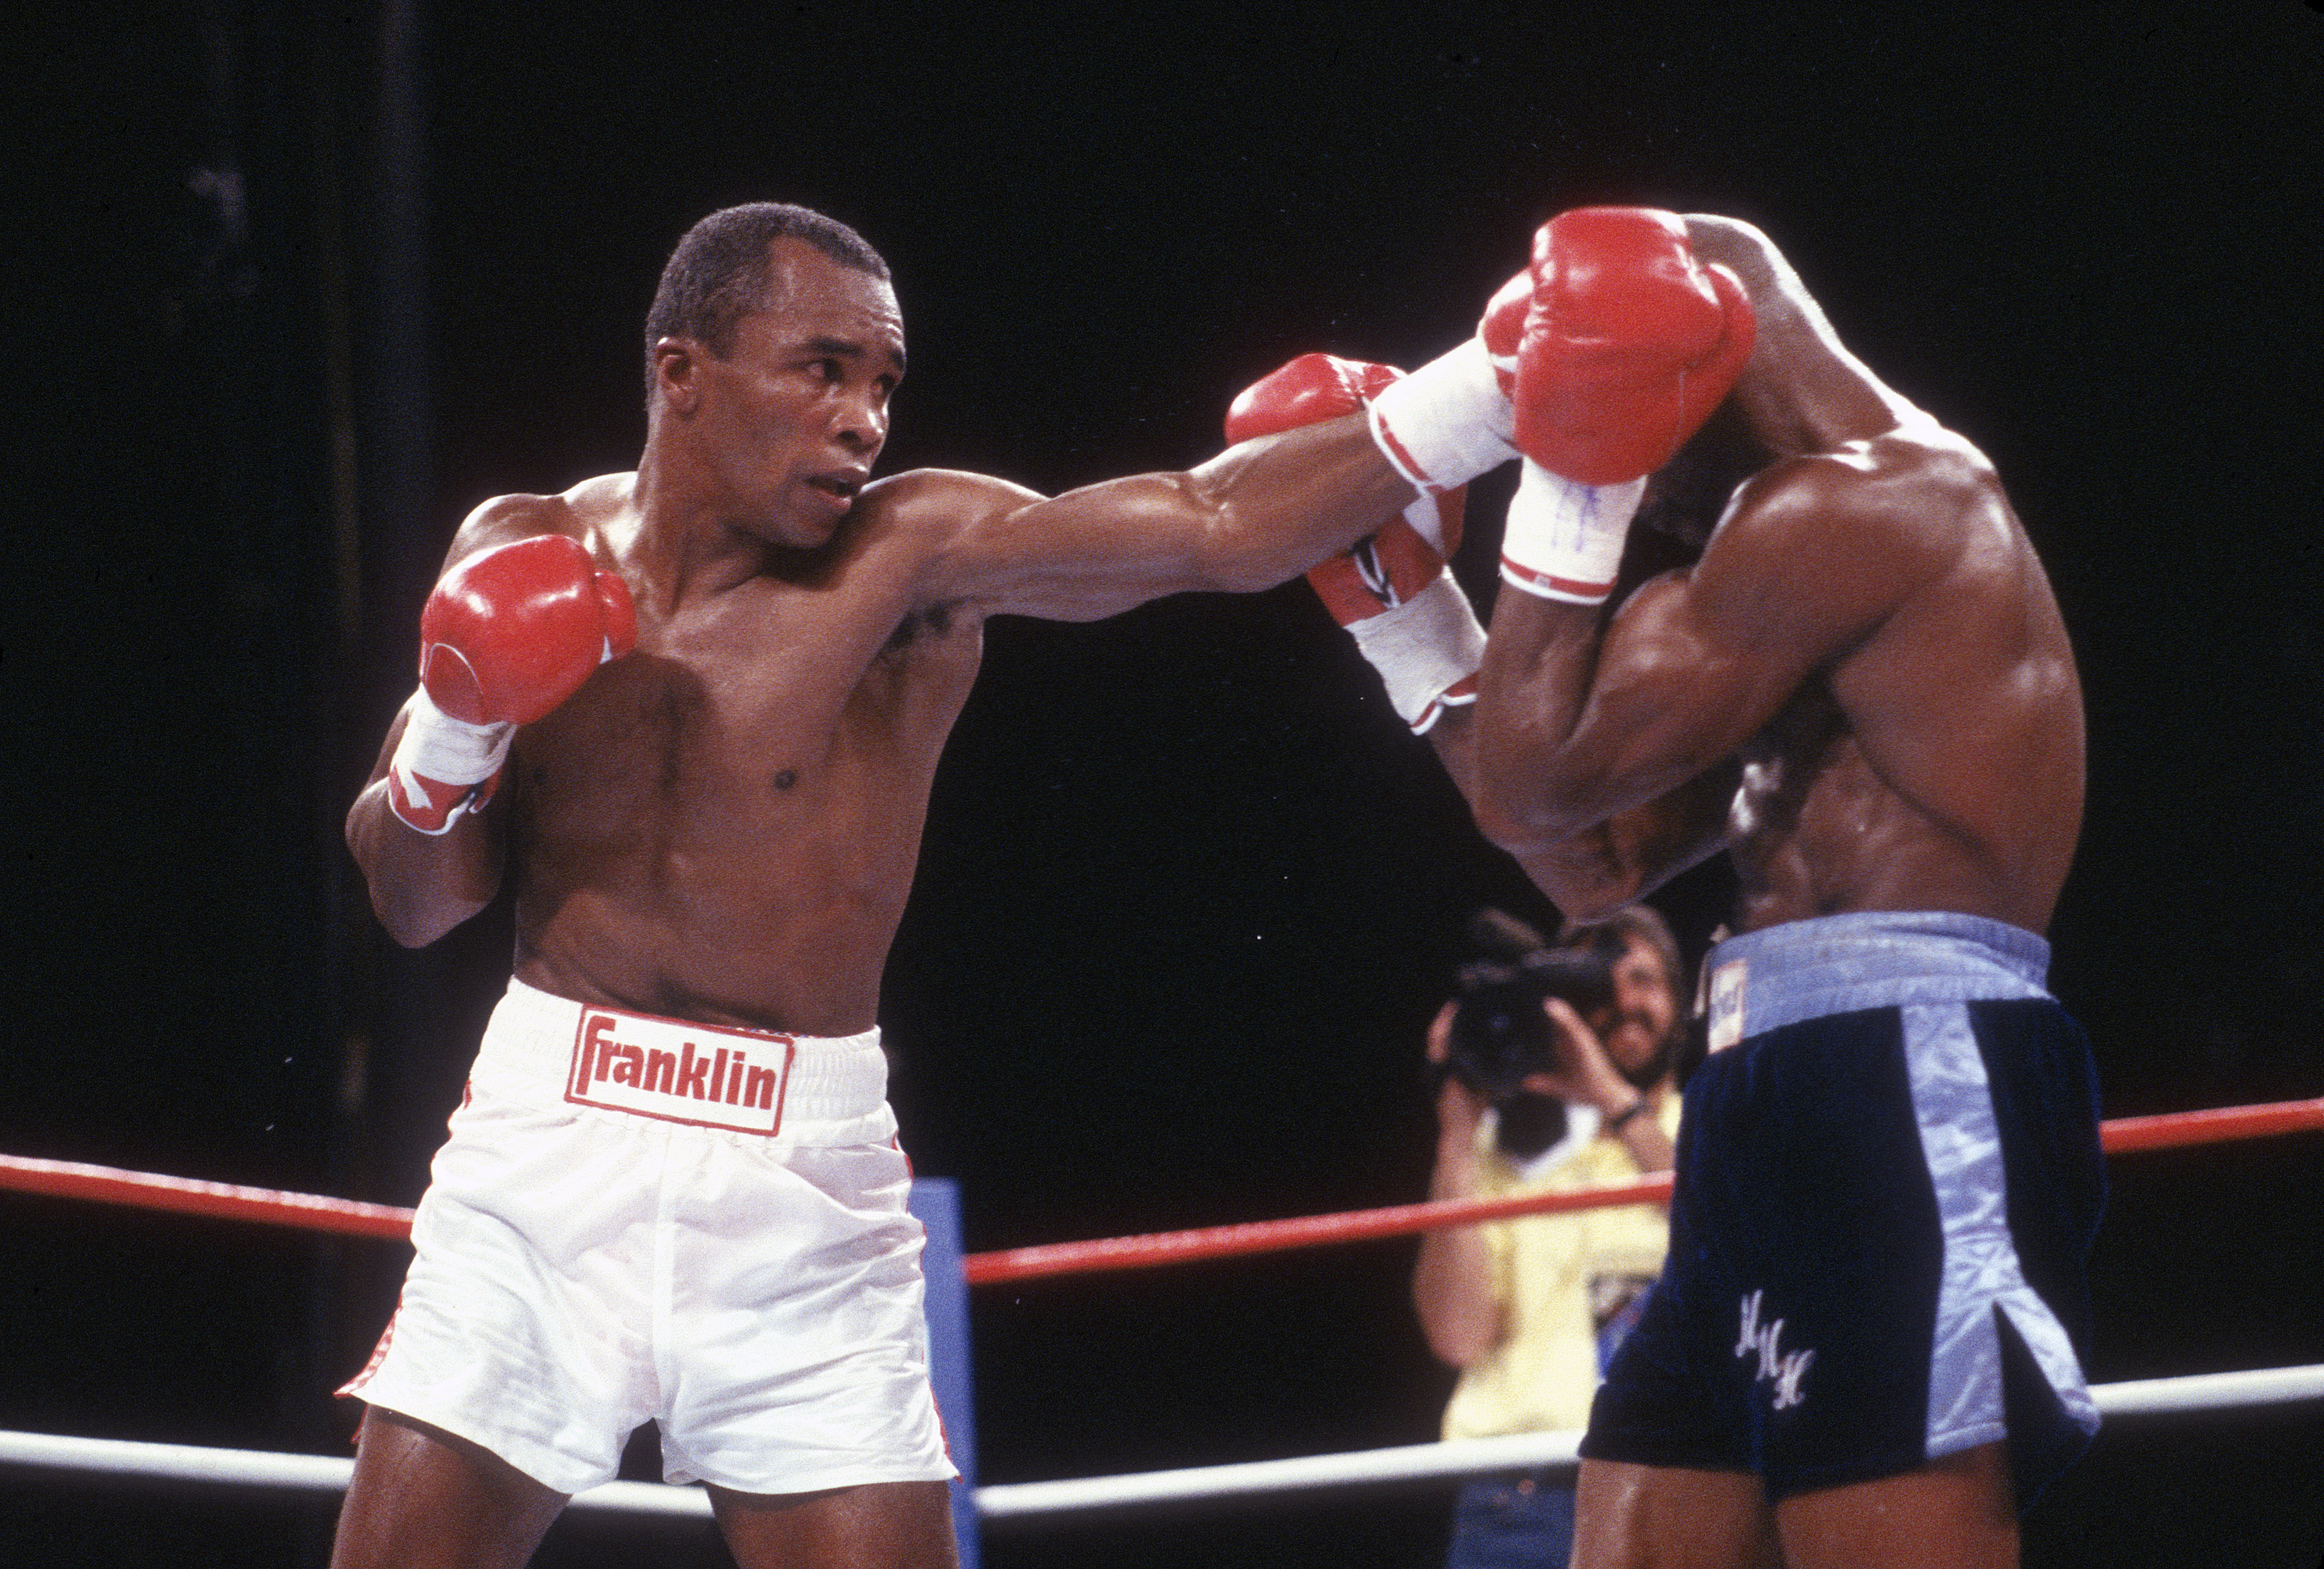 WBC and Ring Middleweight Title Fight - Sugar Ray Leonard v Marvin Hagler